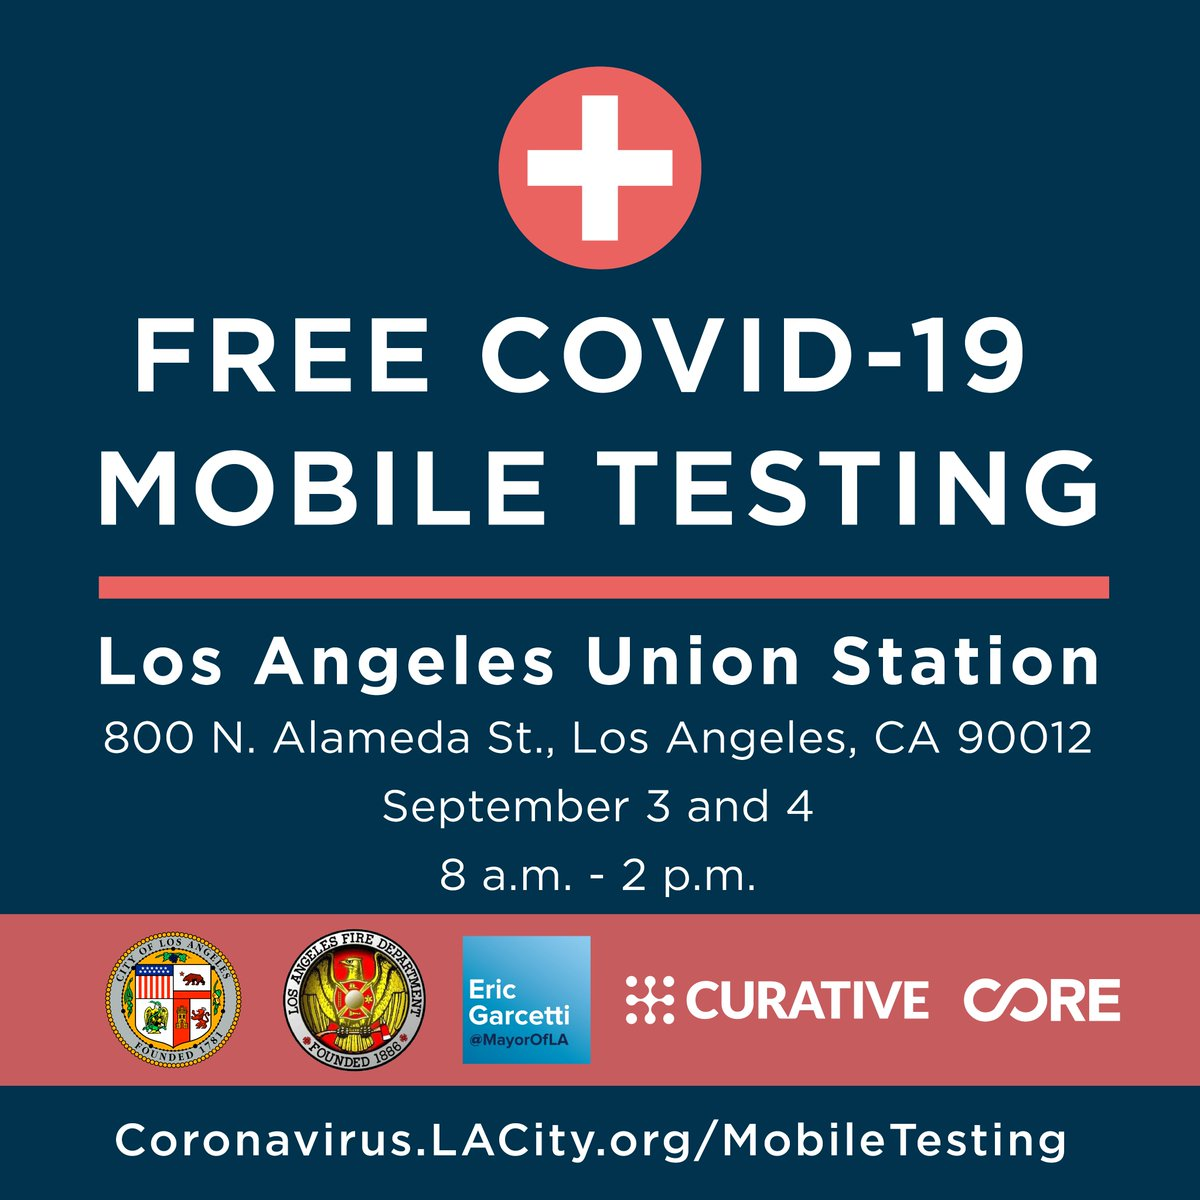 Mayorofla On Twitter We Re Bringing Covid 19 Testing To You No Appointment Needed Visit Https T Co 1tx4eqmgxu For More Upcoming Dates And Locations Https T Co Ppkvmjoec0